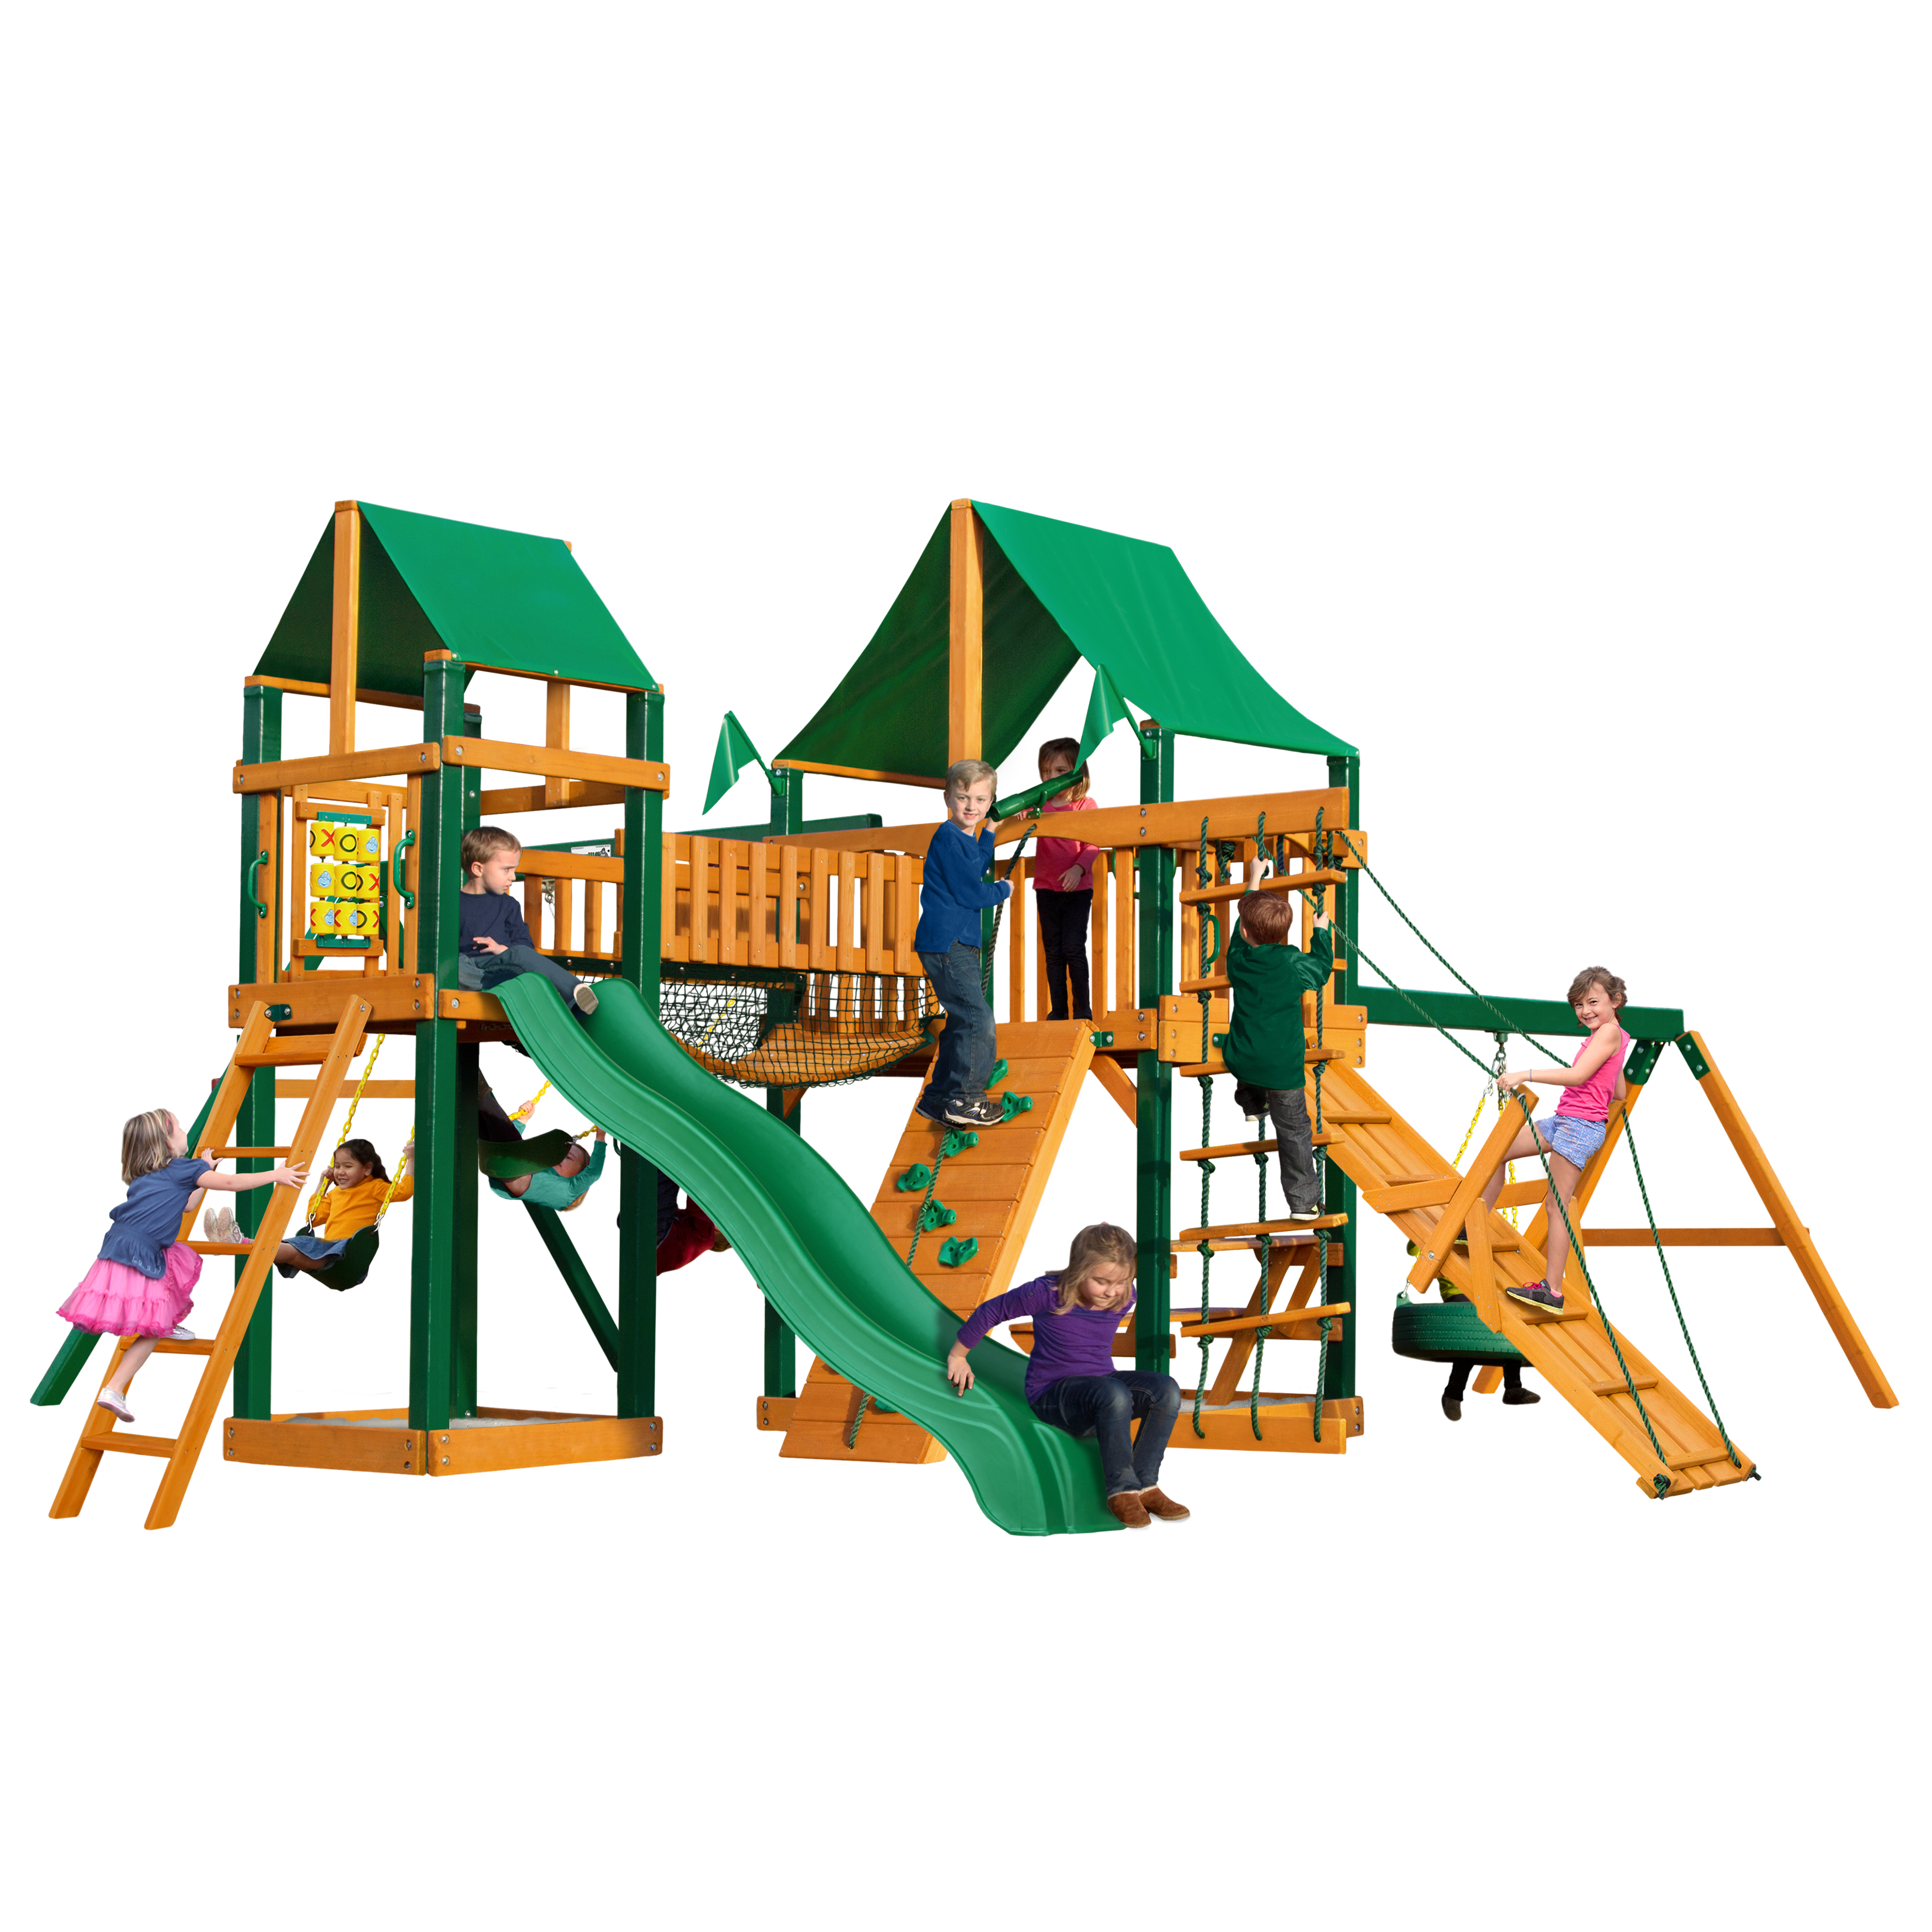 Gorilla Playsets Pioneer Peak Cedar Swing Set with Green Vinyl Canopy and Timber Shield Posts